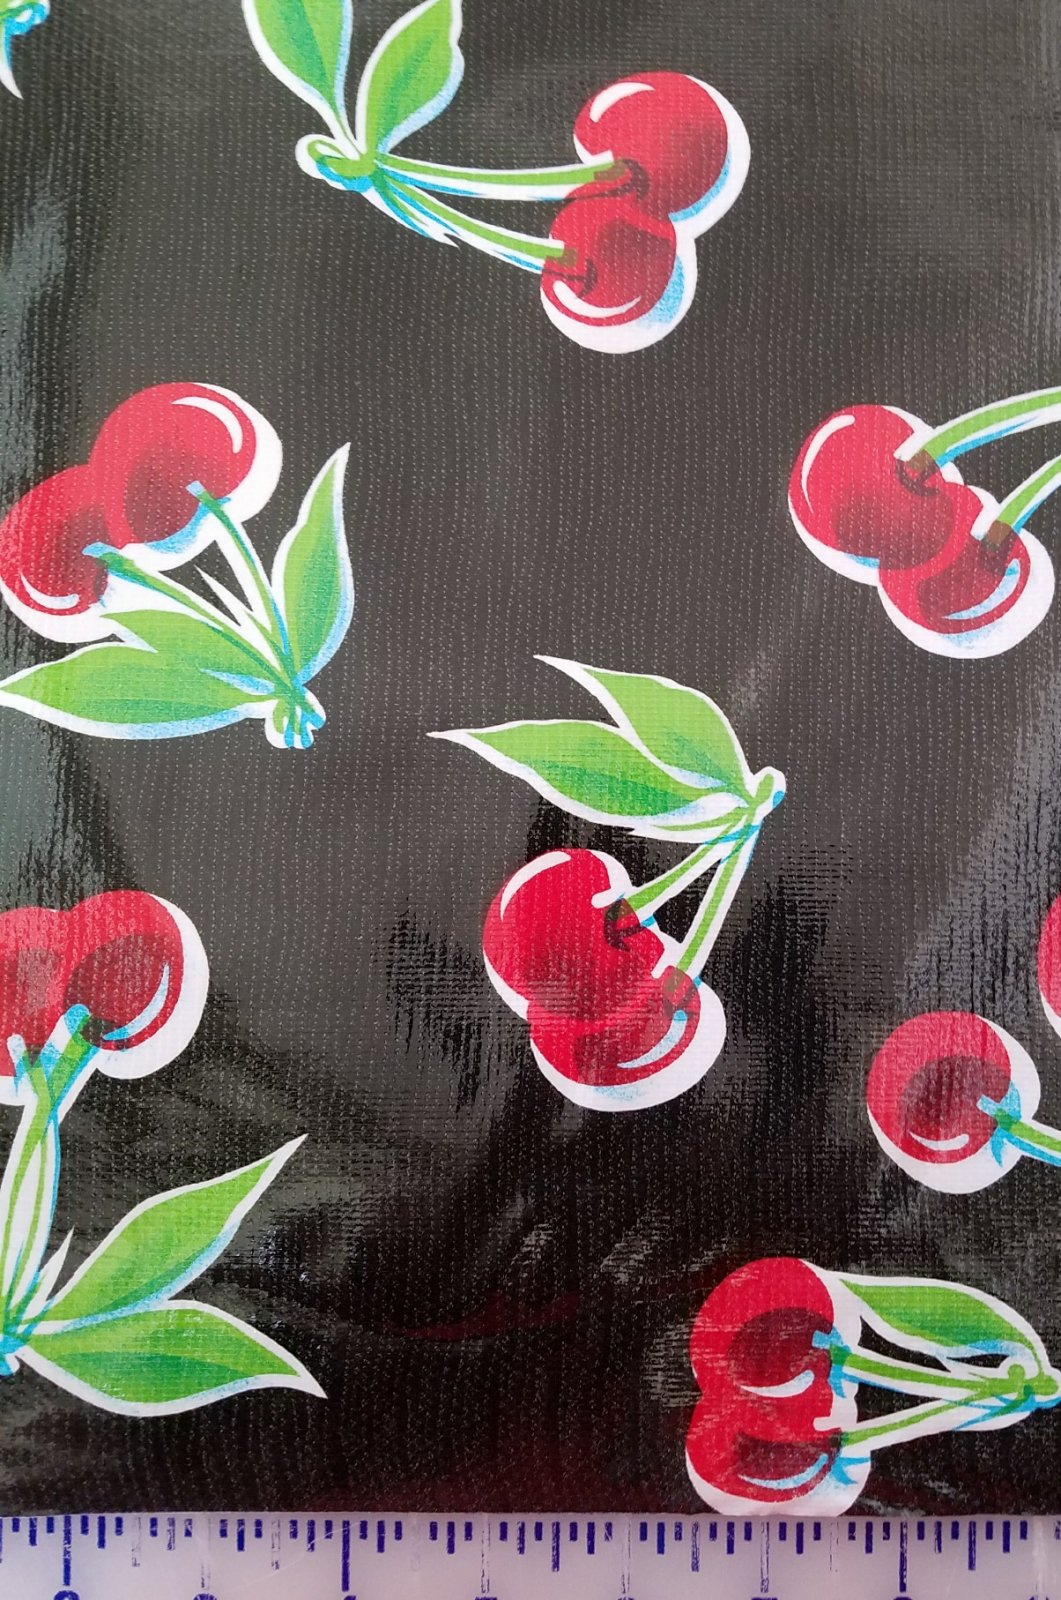 BLKCHERRIE Moda Oilcloth 48 wide Black with Cherries